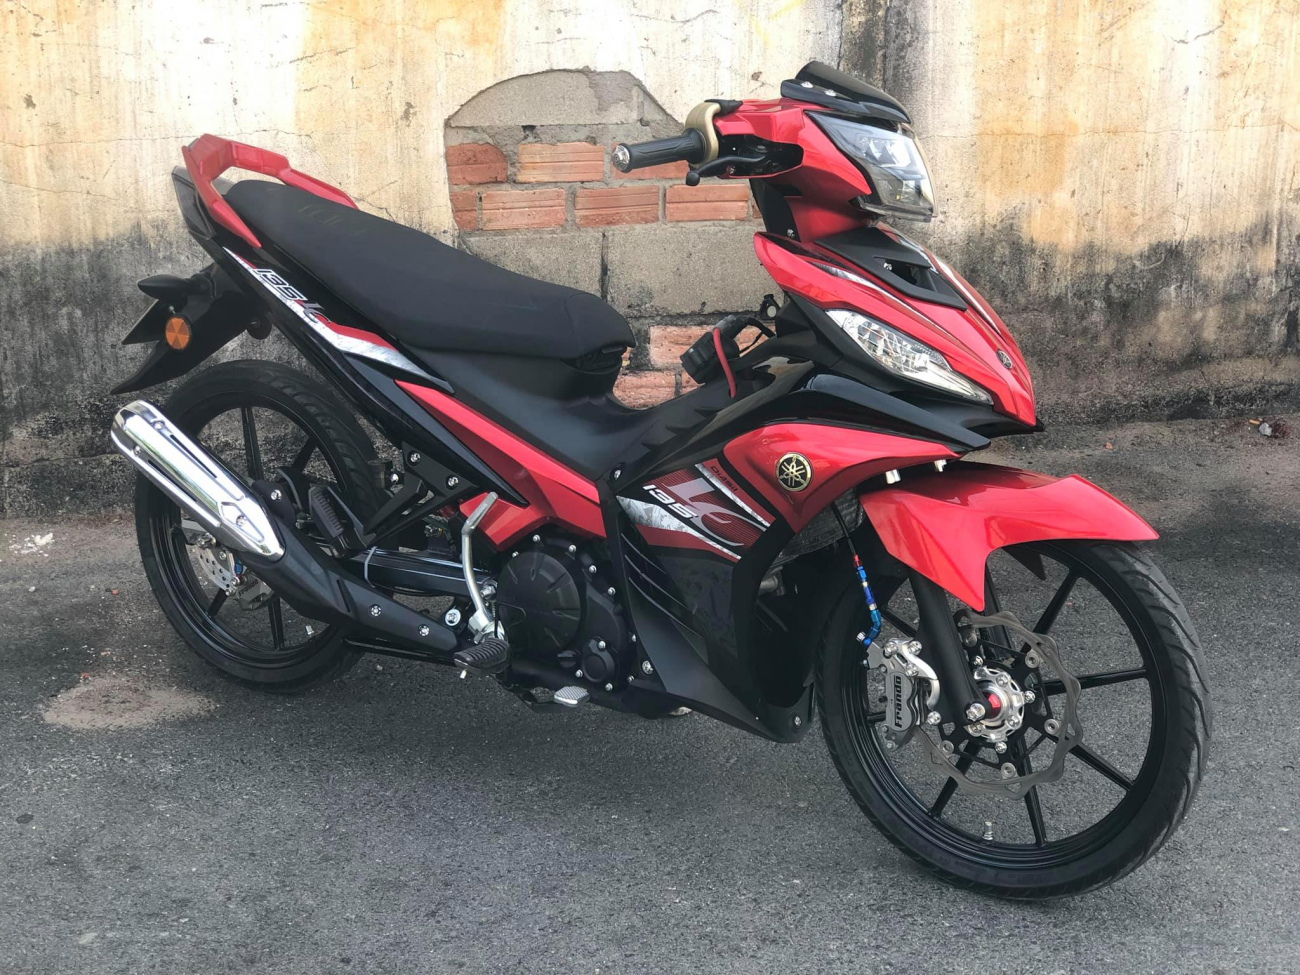 Exciter 135 cai trang thanh LC 135 voi dan chan chat luong - 9